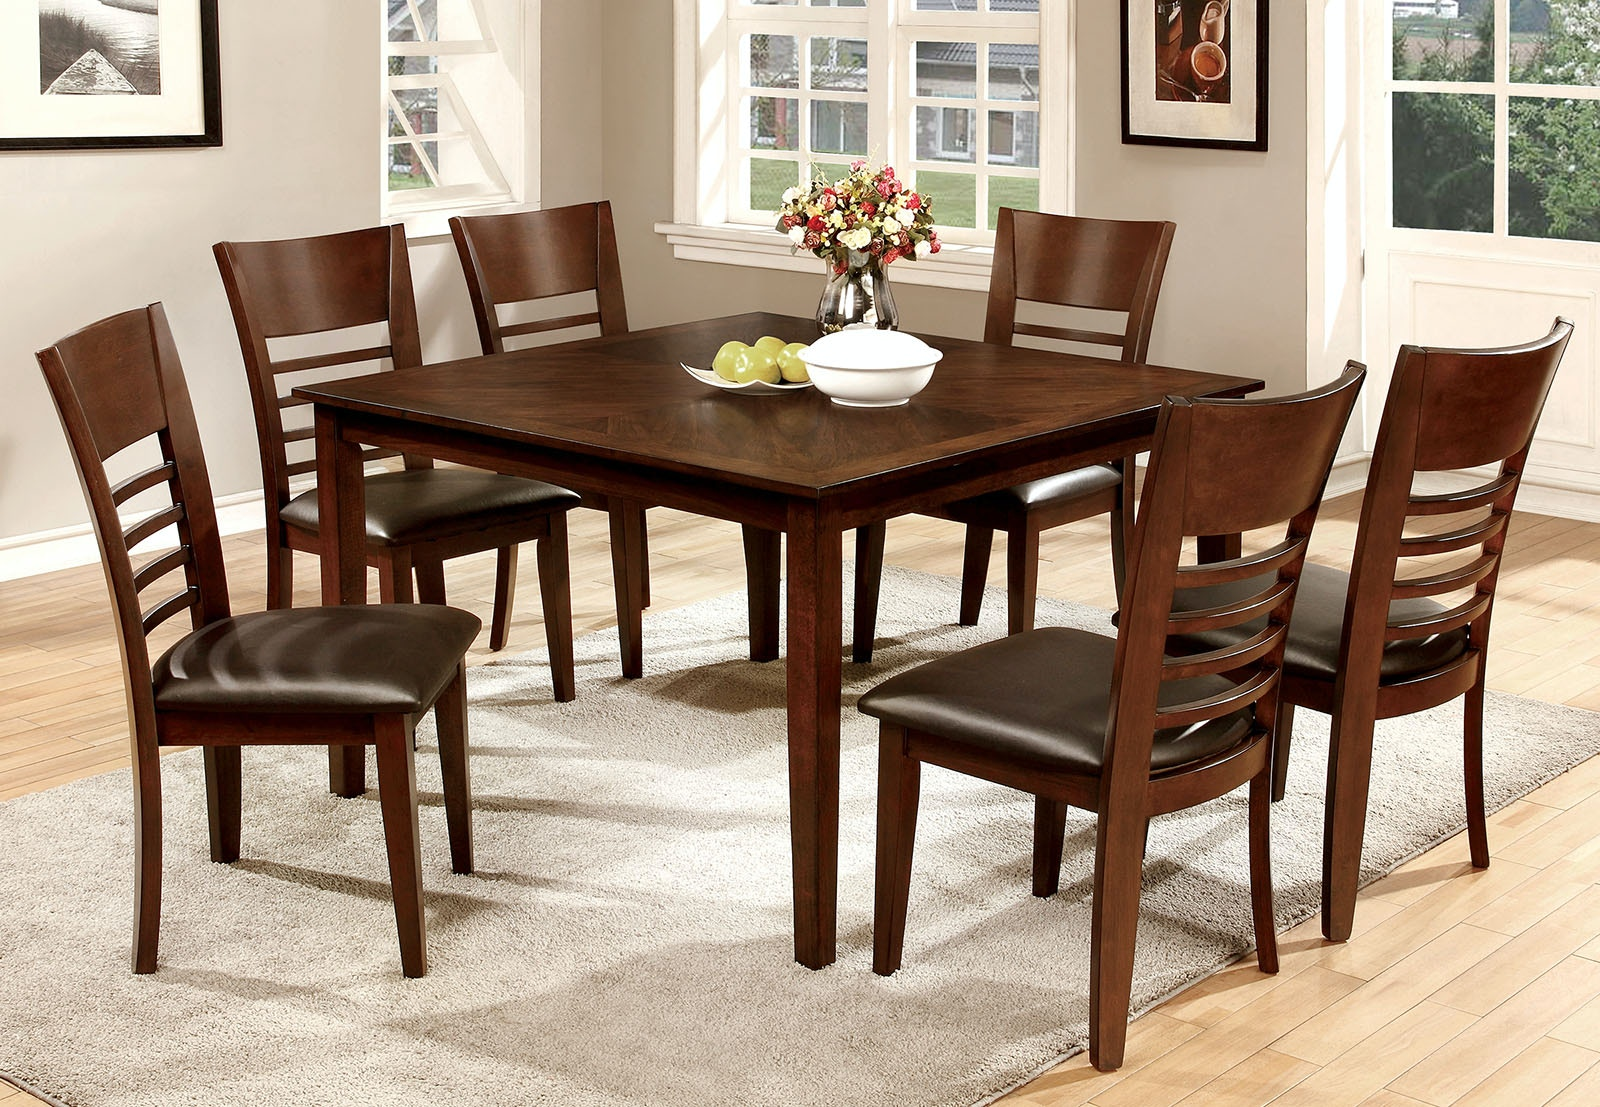 Furniture Of America Dining Room 7 Pc. Dining Table Set CM3916T 7PC At The  Furniture Mall